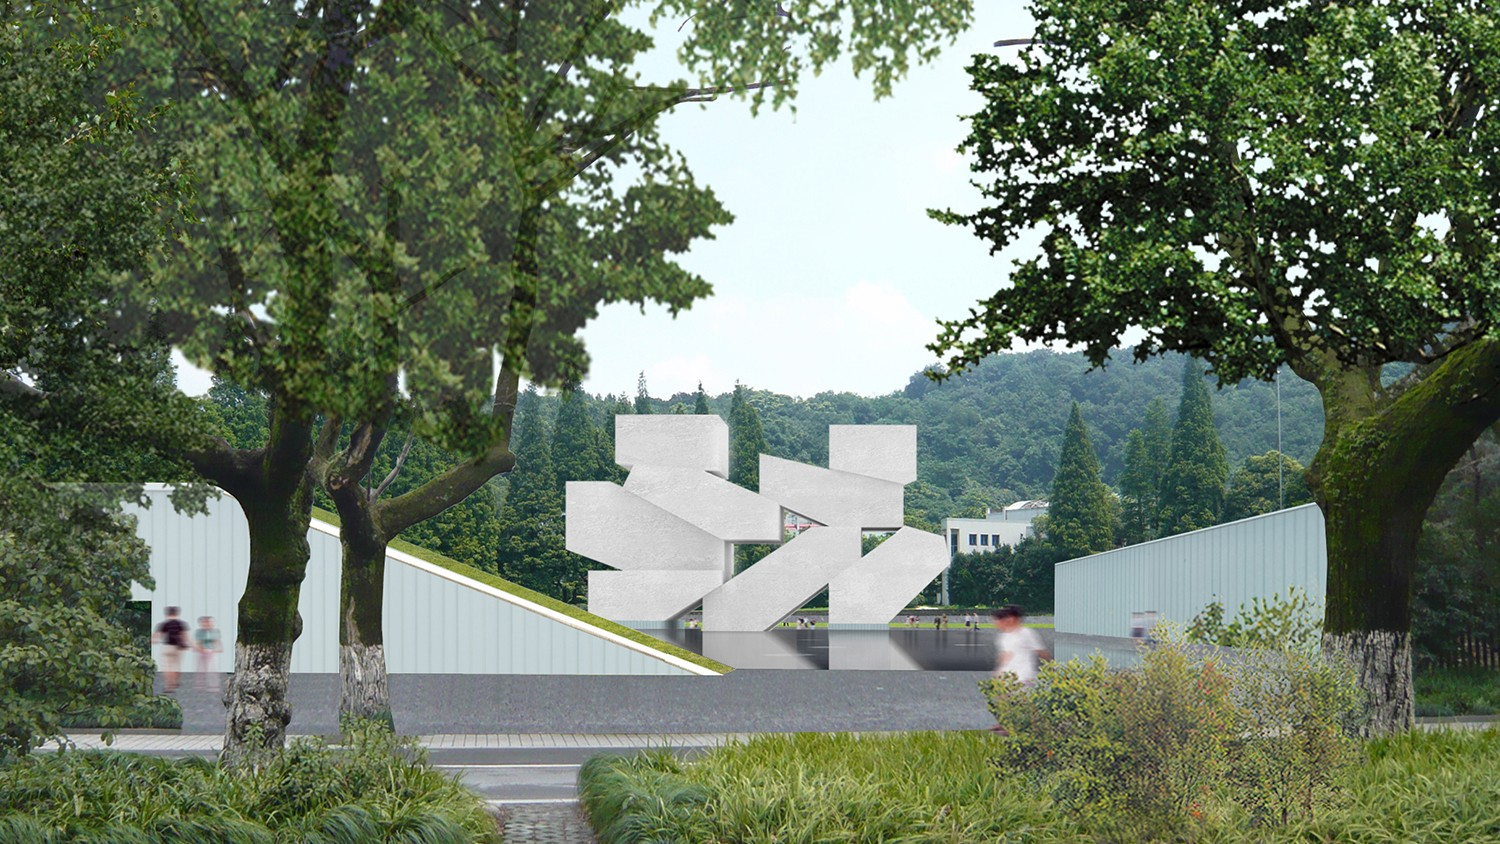 https://s3.us-east-2.amazonaws.com/steven-holl/uploads/projects/project-images/StevenHollArchitects_HangzhouMusic_P1130980_WH.jpg